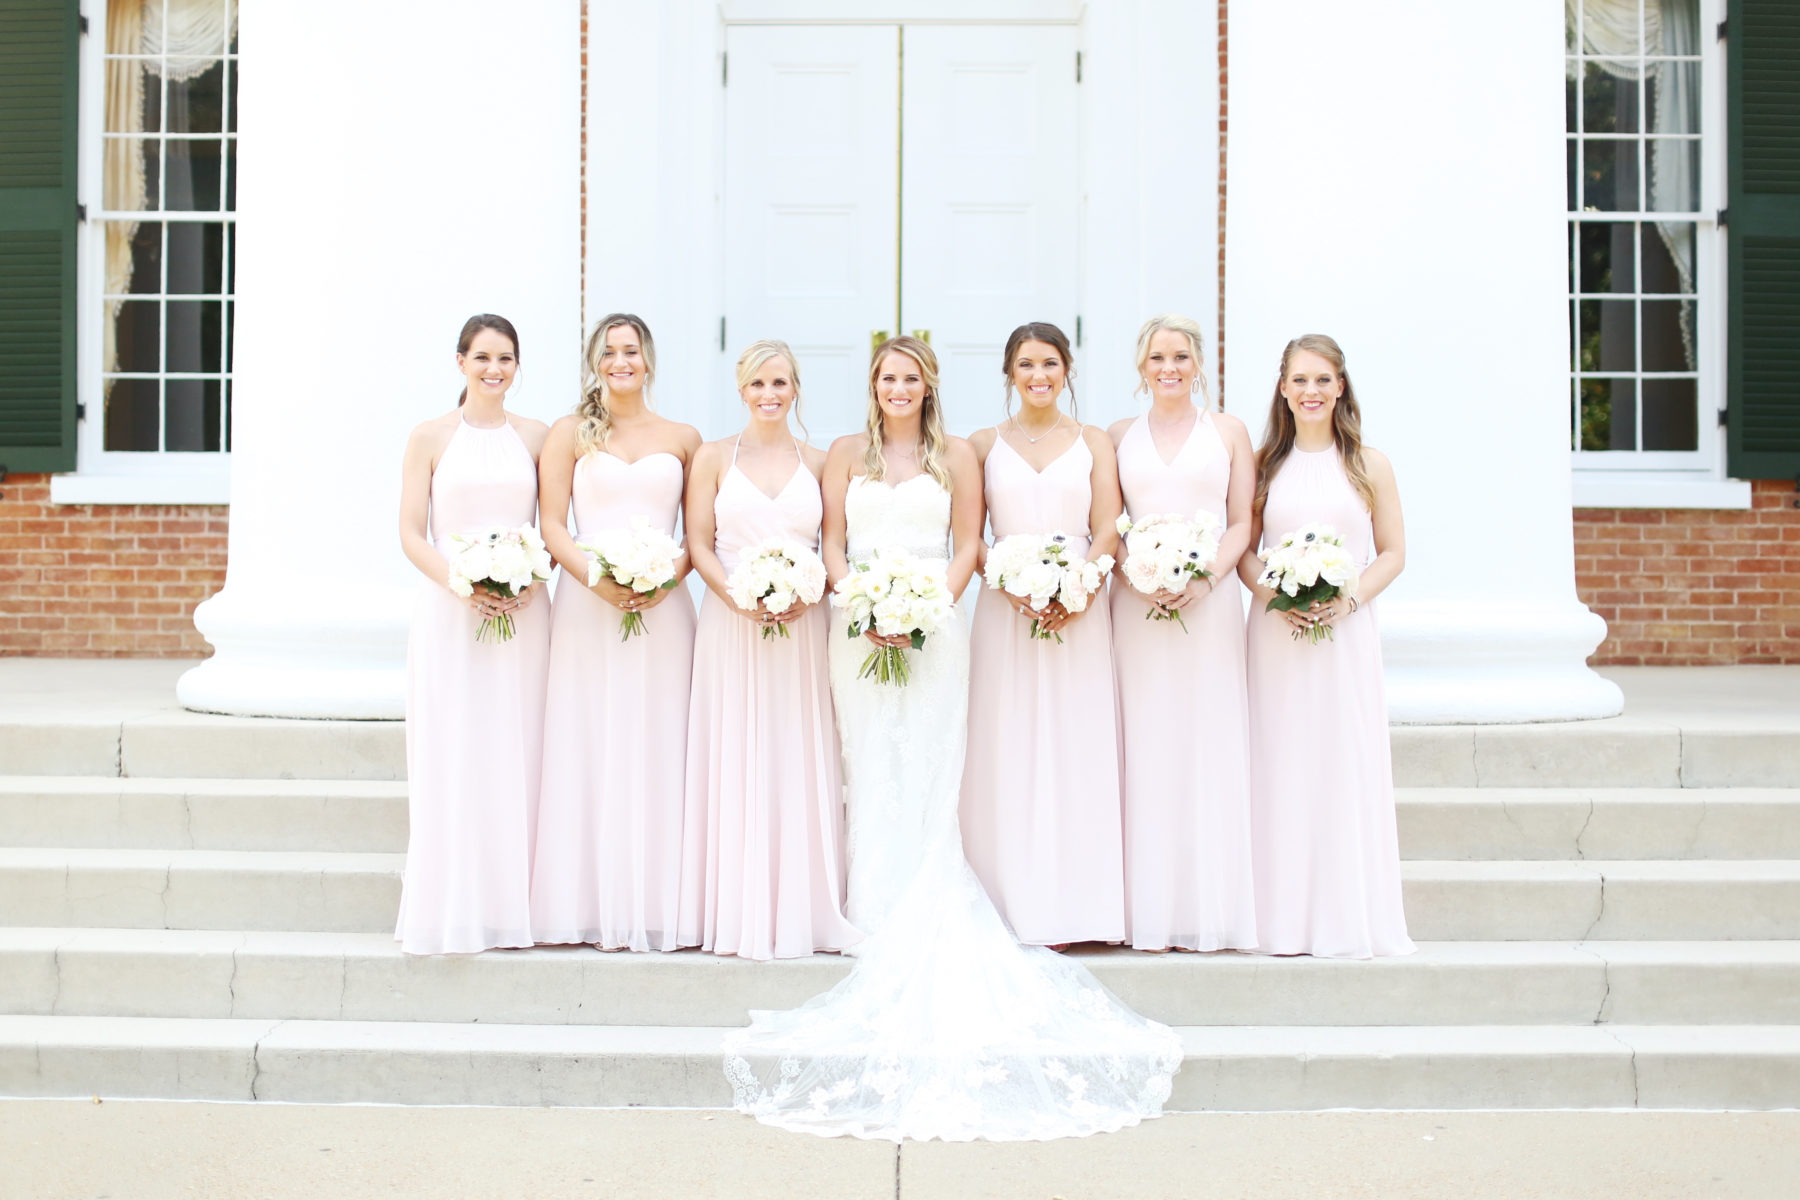 Pink Bridesmaid Dresses captured by Eliza Kennard Wedding Photography featured on Nashville Bride Guide